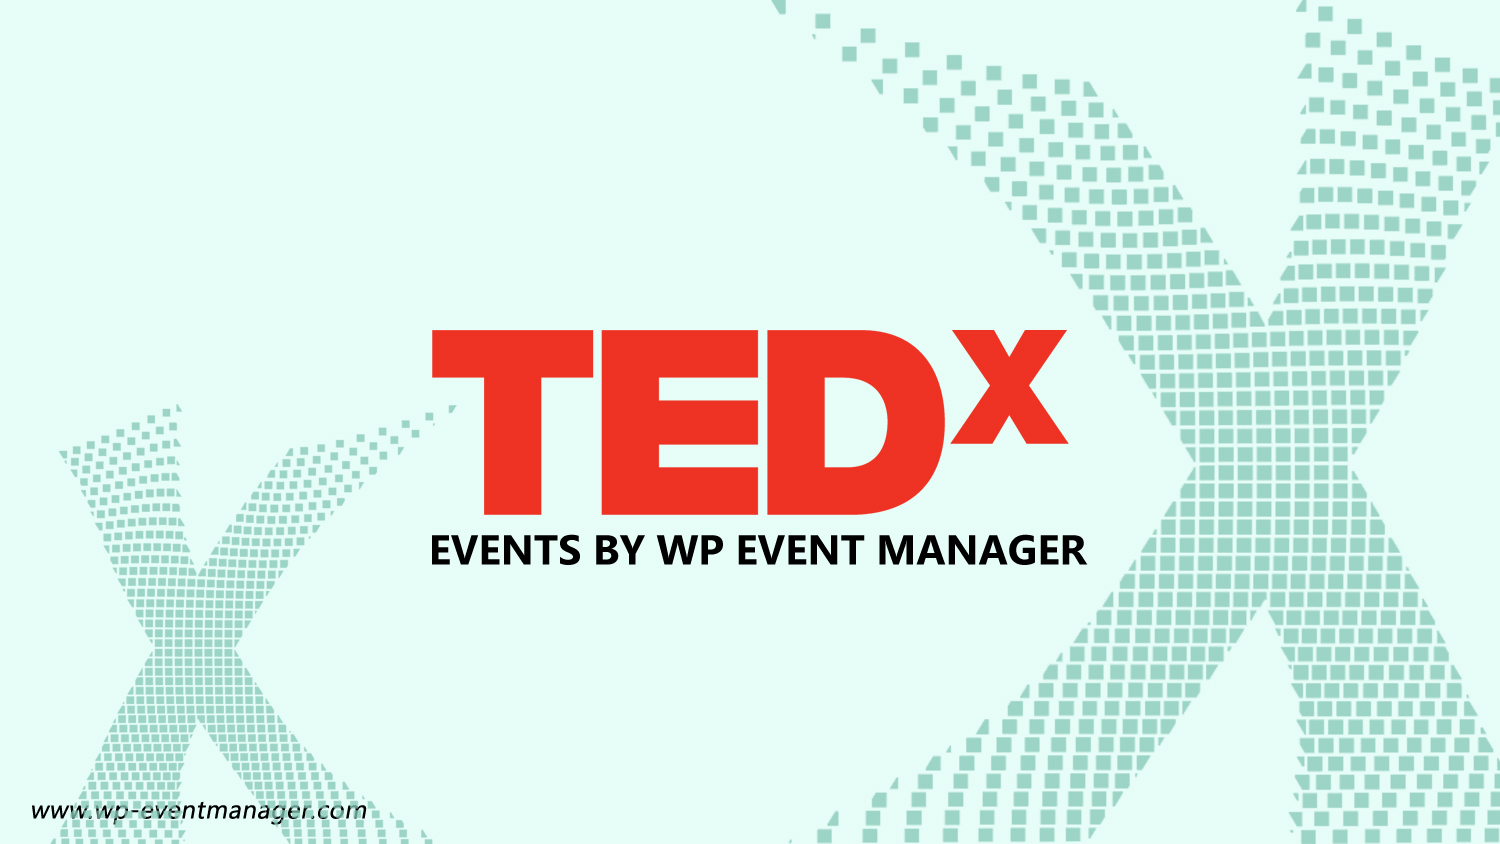 tedx event management